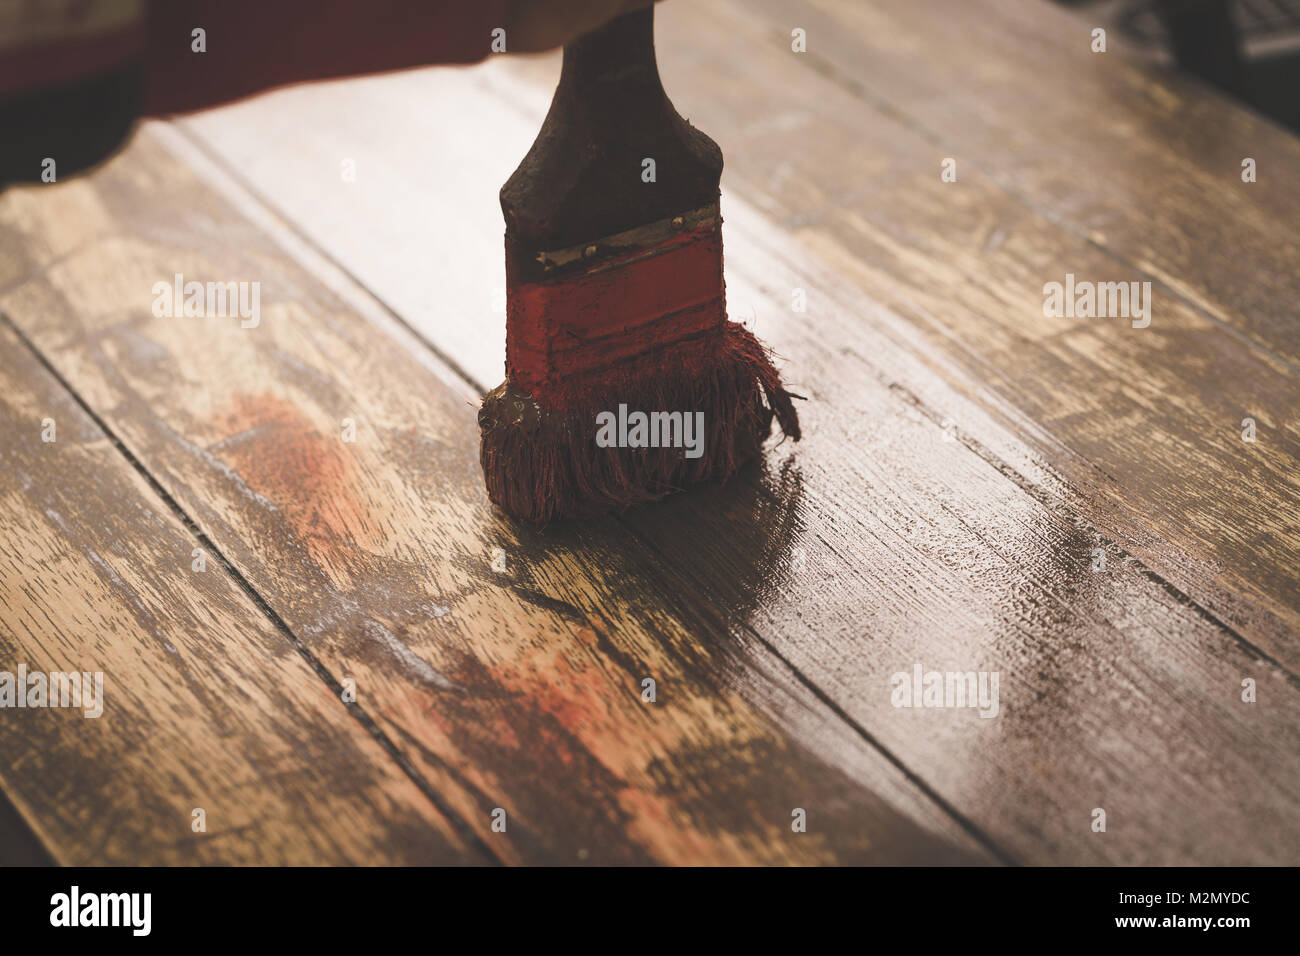 Craftsman hand painting brown color on wooden table use for home decorated. Wood renovation. Toned Image. - Stock Image